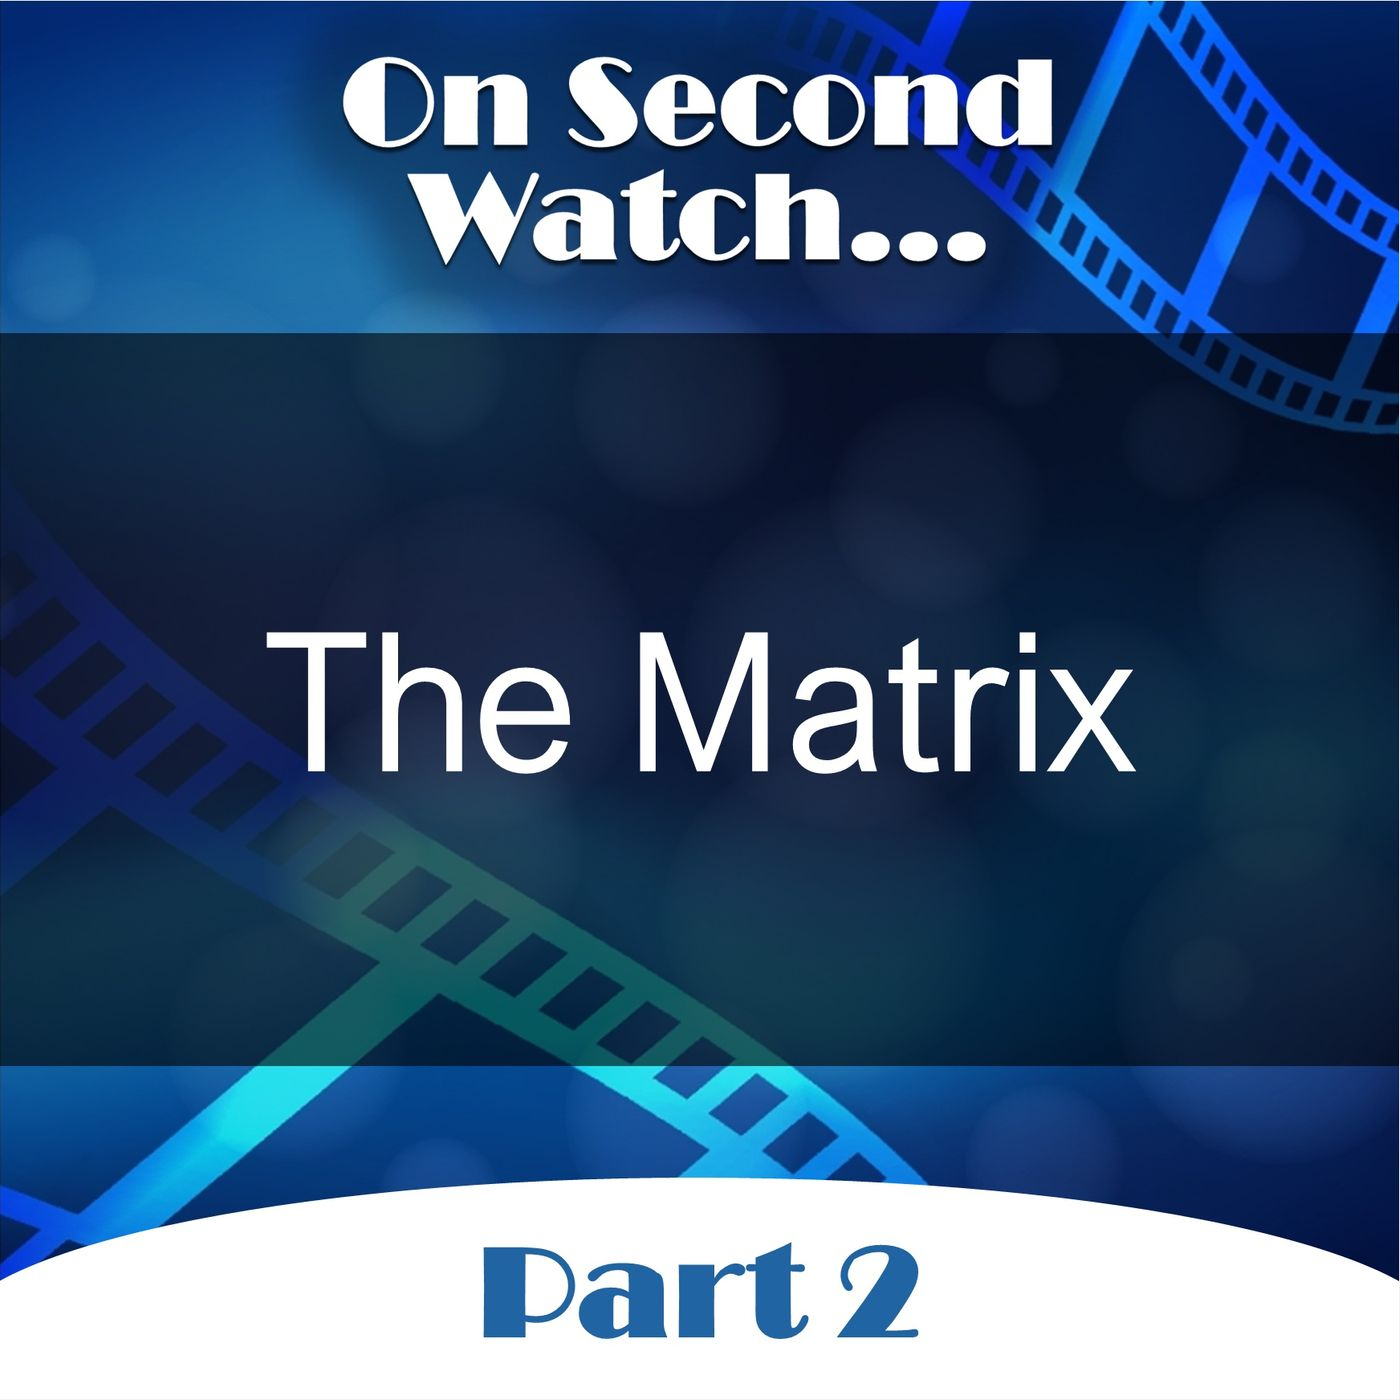 The Matrix (1999) - Part 2, Rewatch Review